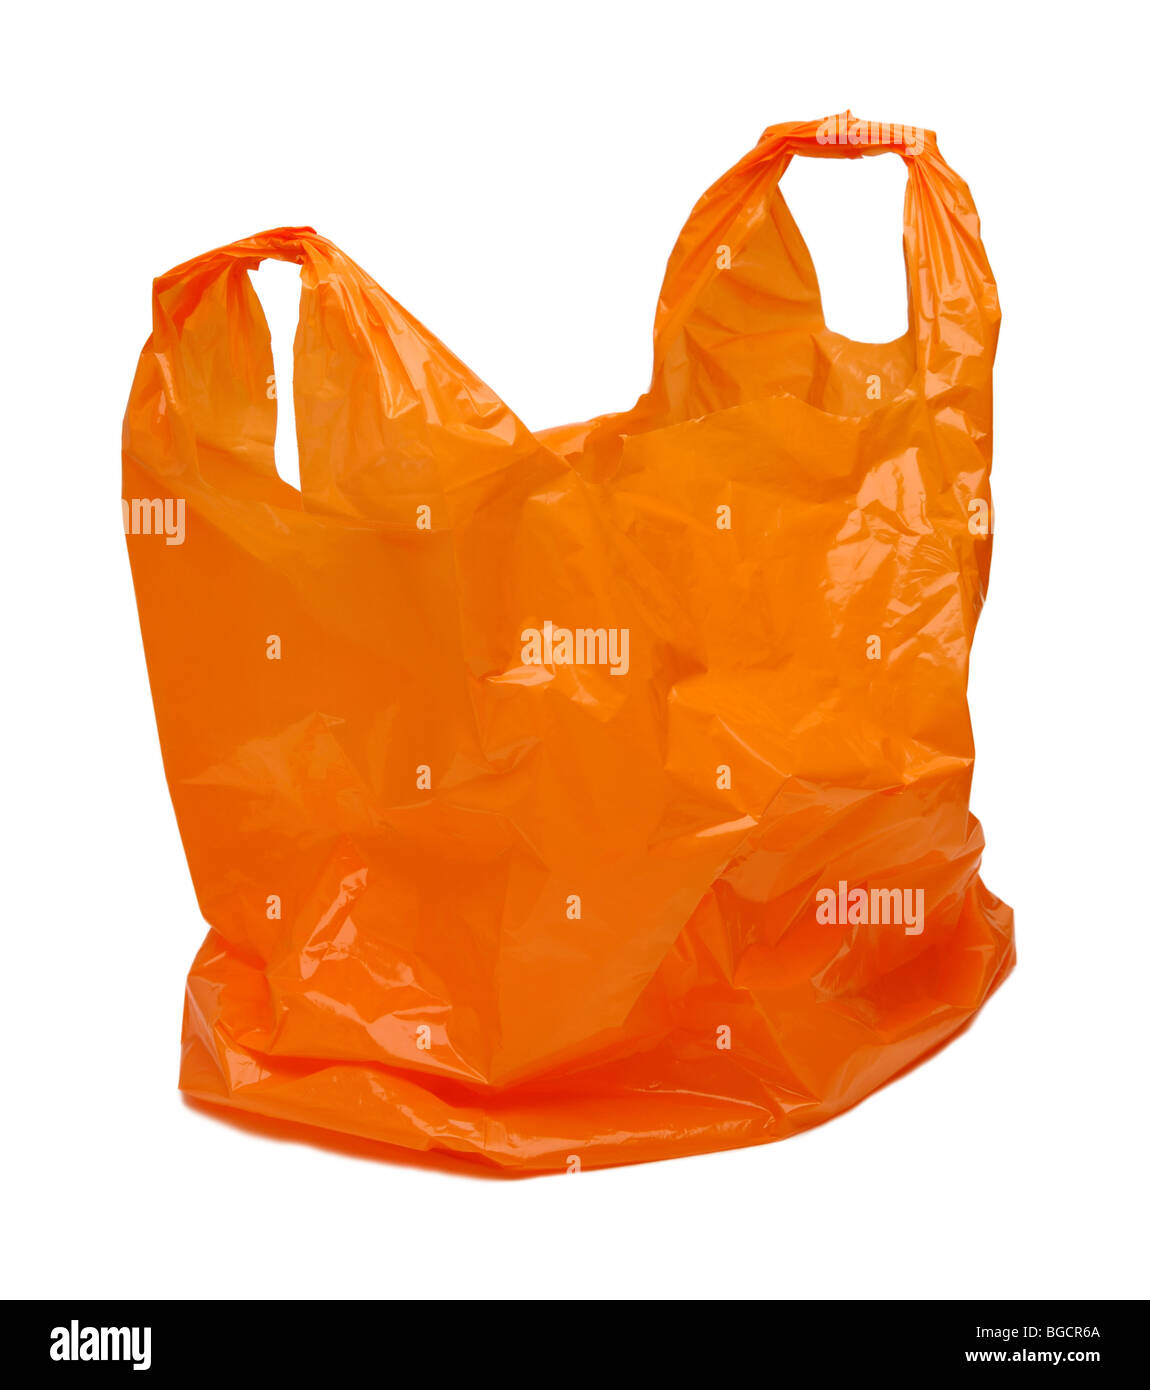 Orange plastic bag - Stock Image